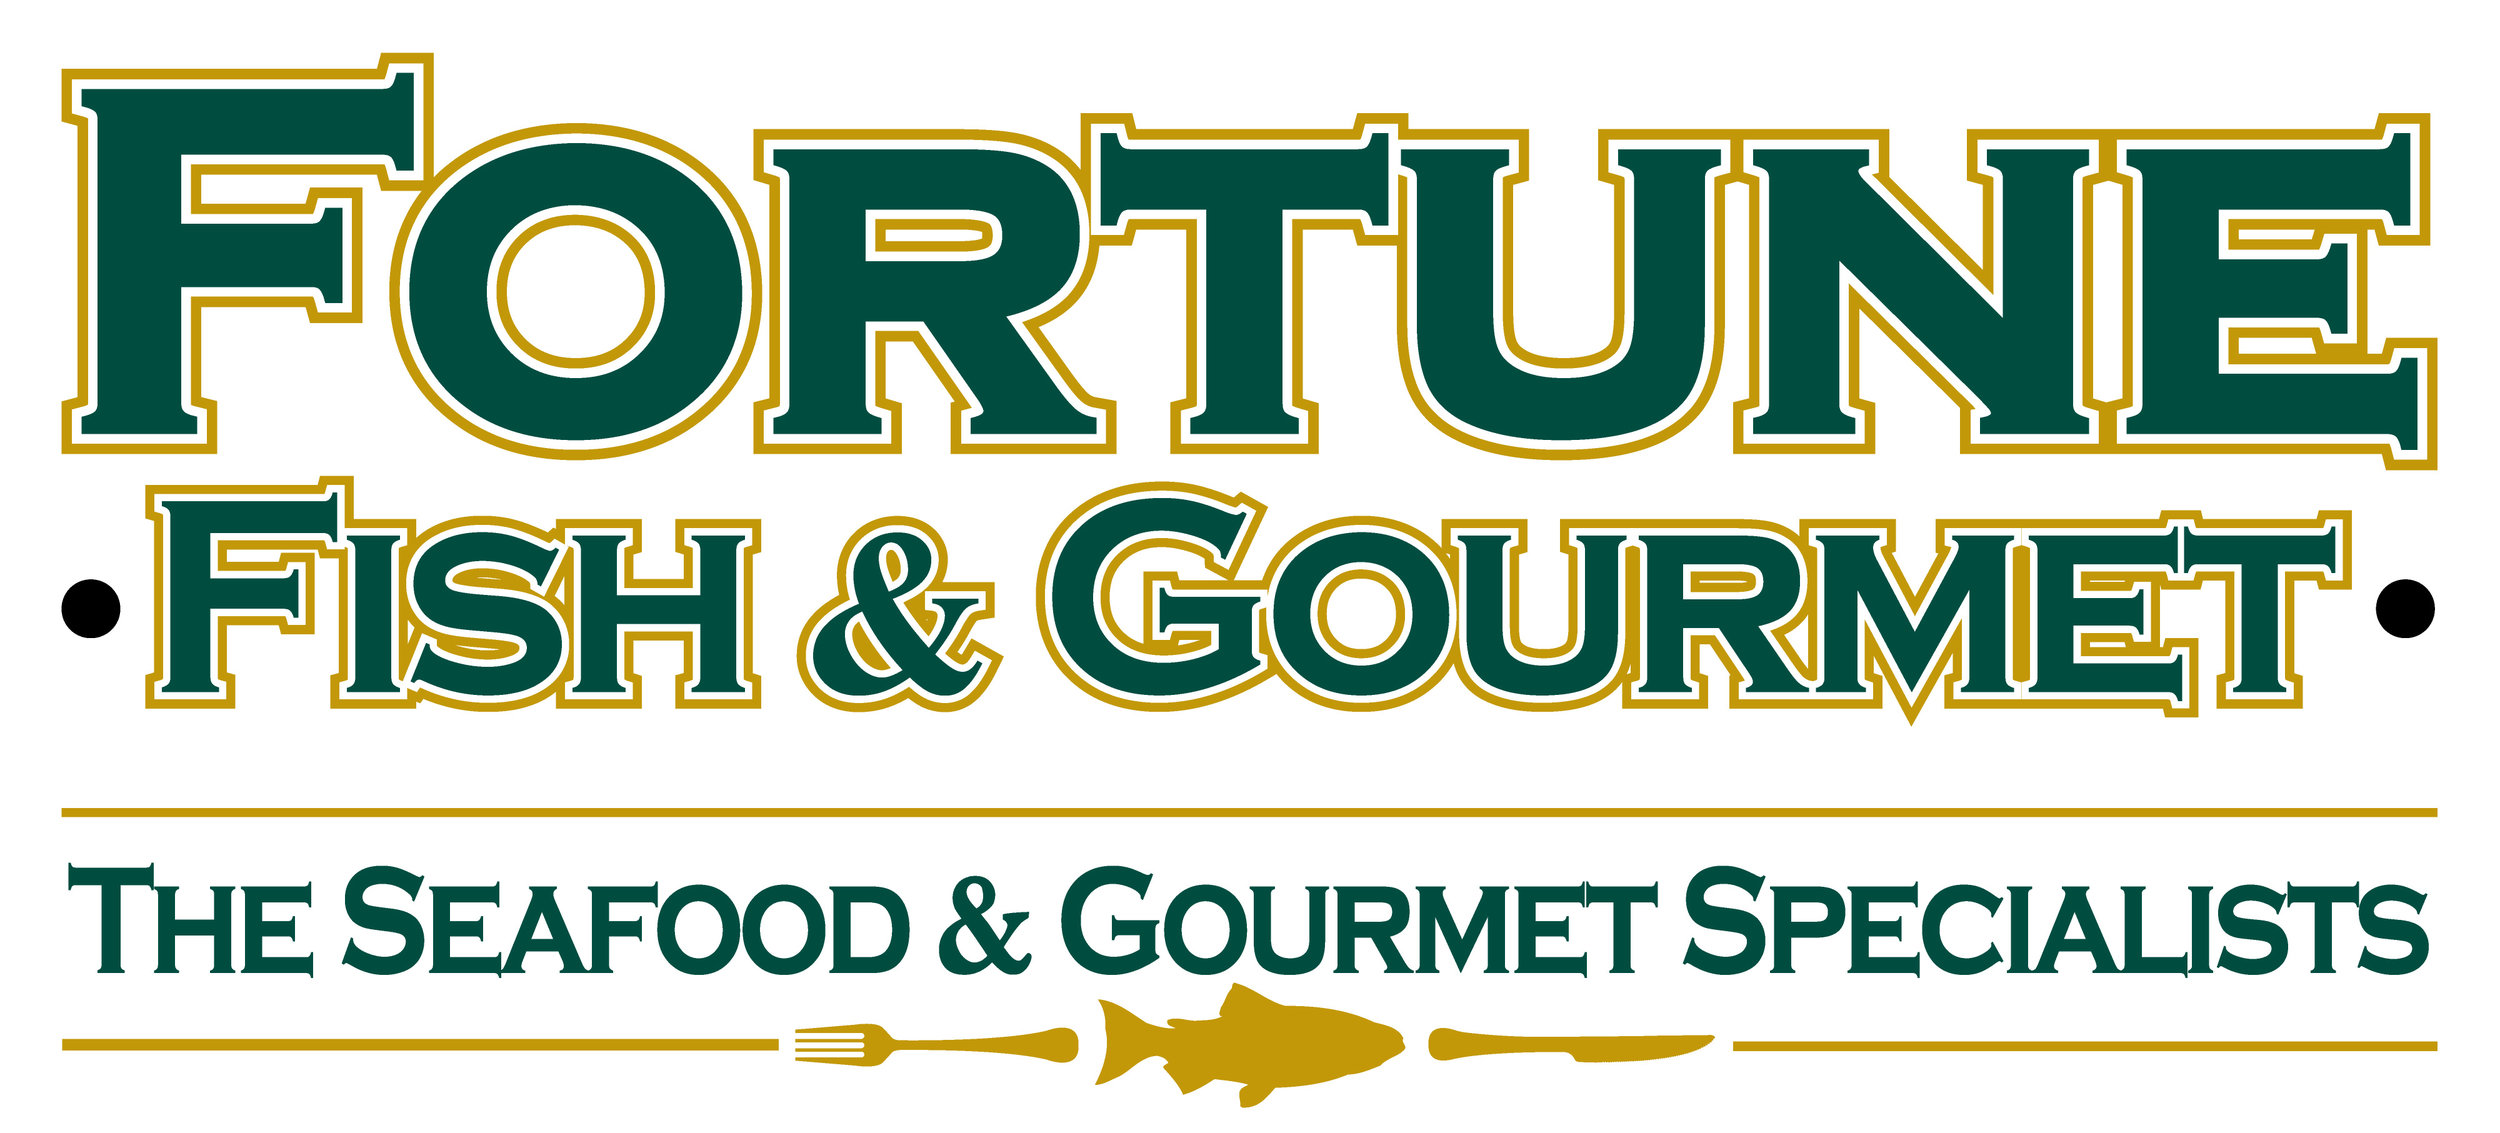 FortuneFish-and-Gourmet-lg.jpg